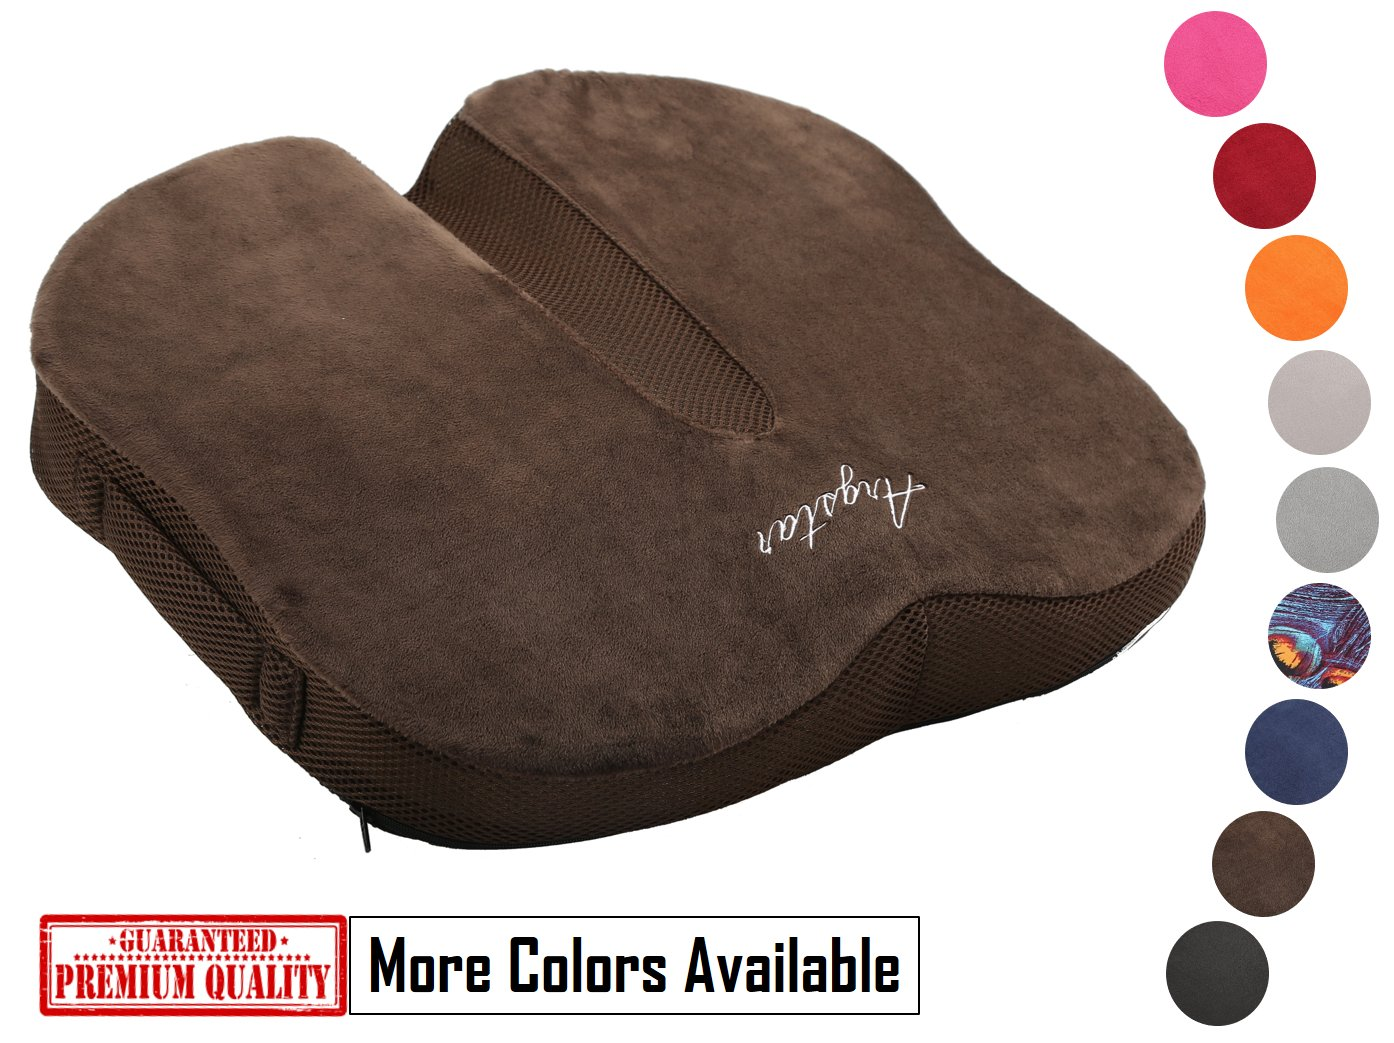 Argstar Coccyx Orthopedic Memory Foam Seat Cushion 3D Breathable for Back Pain Coffee